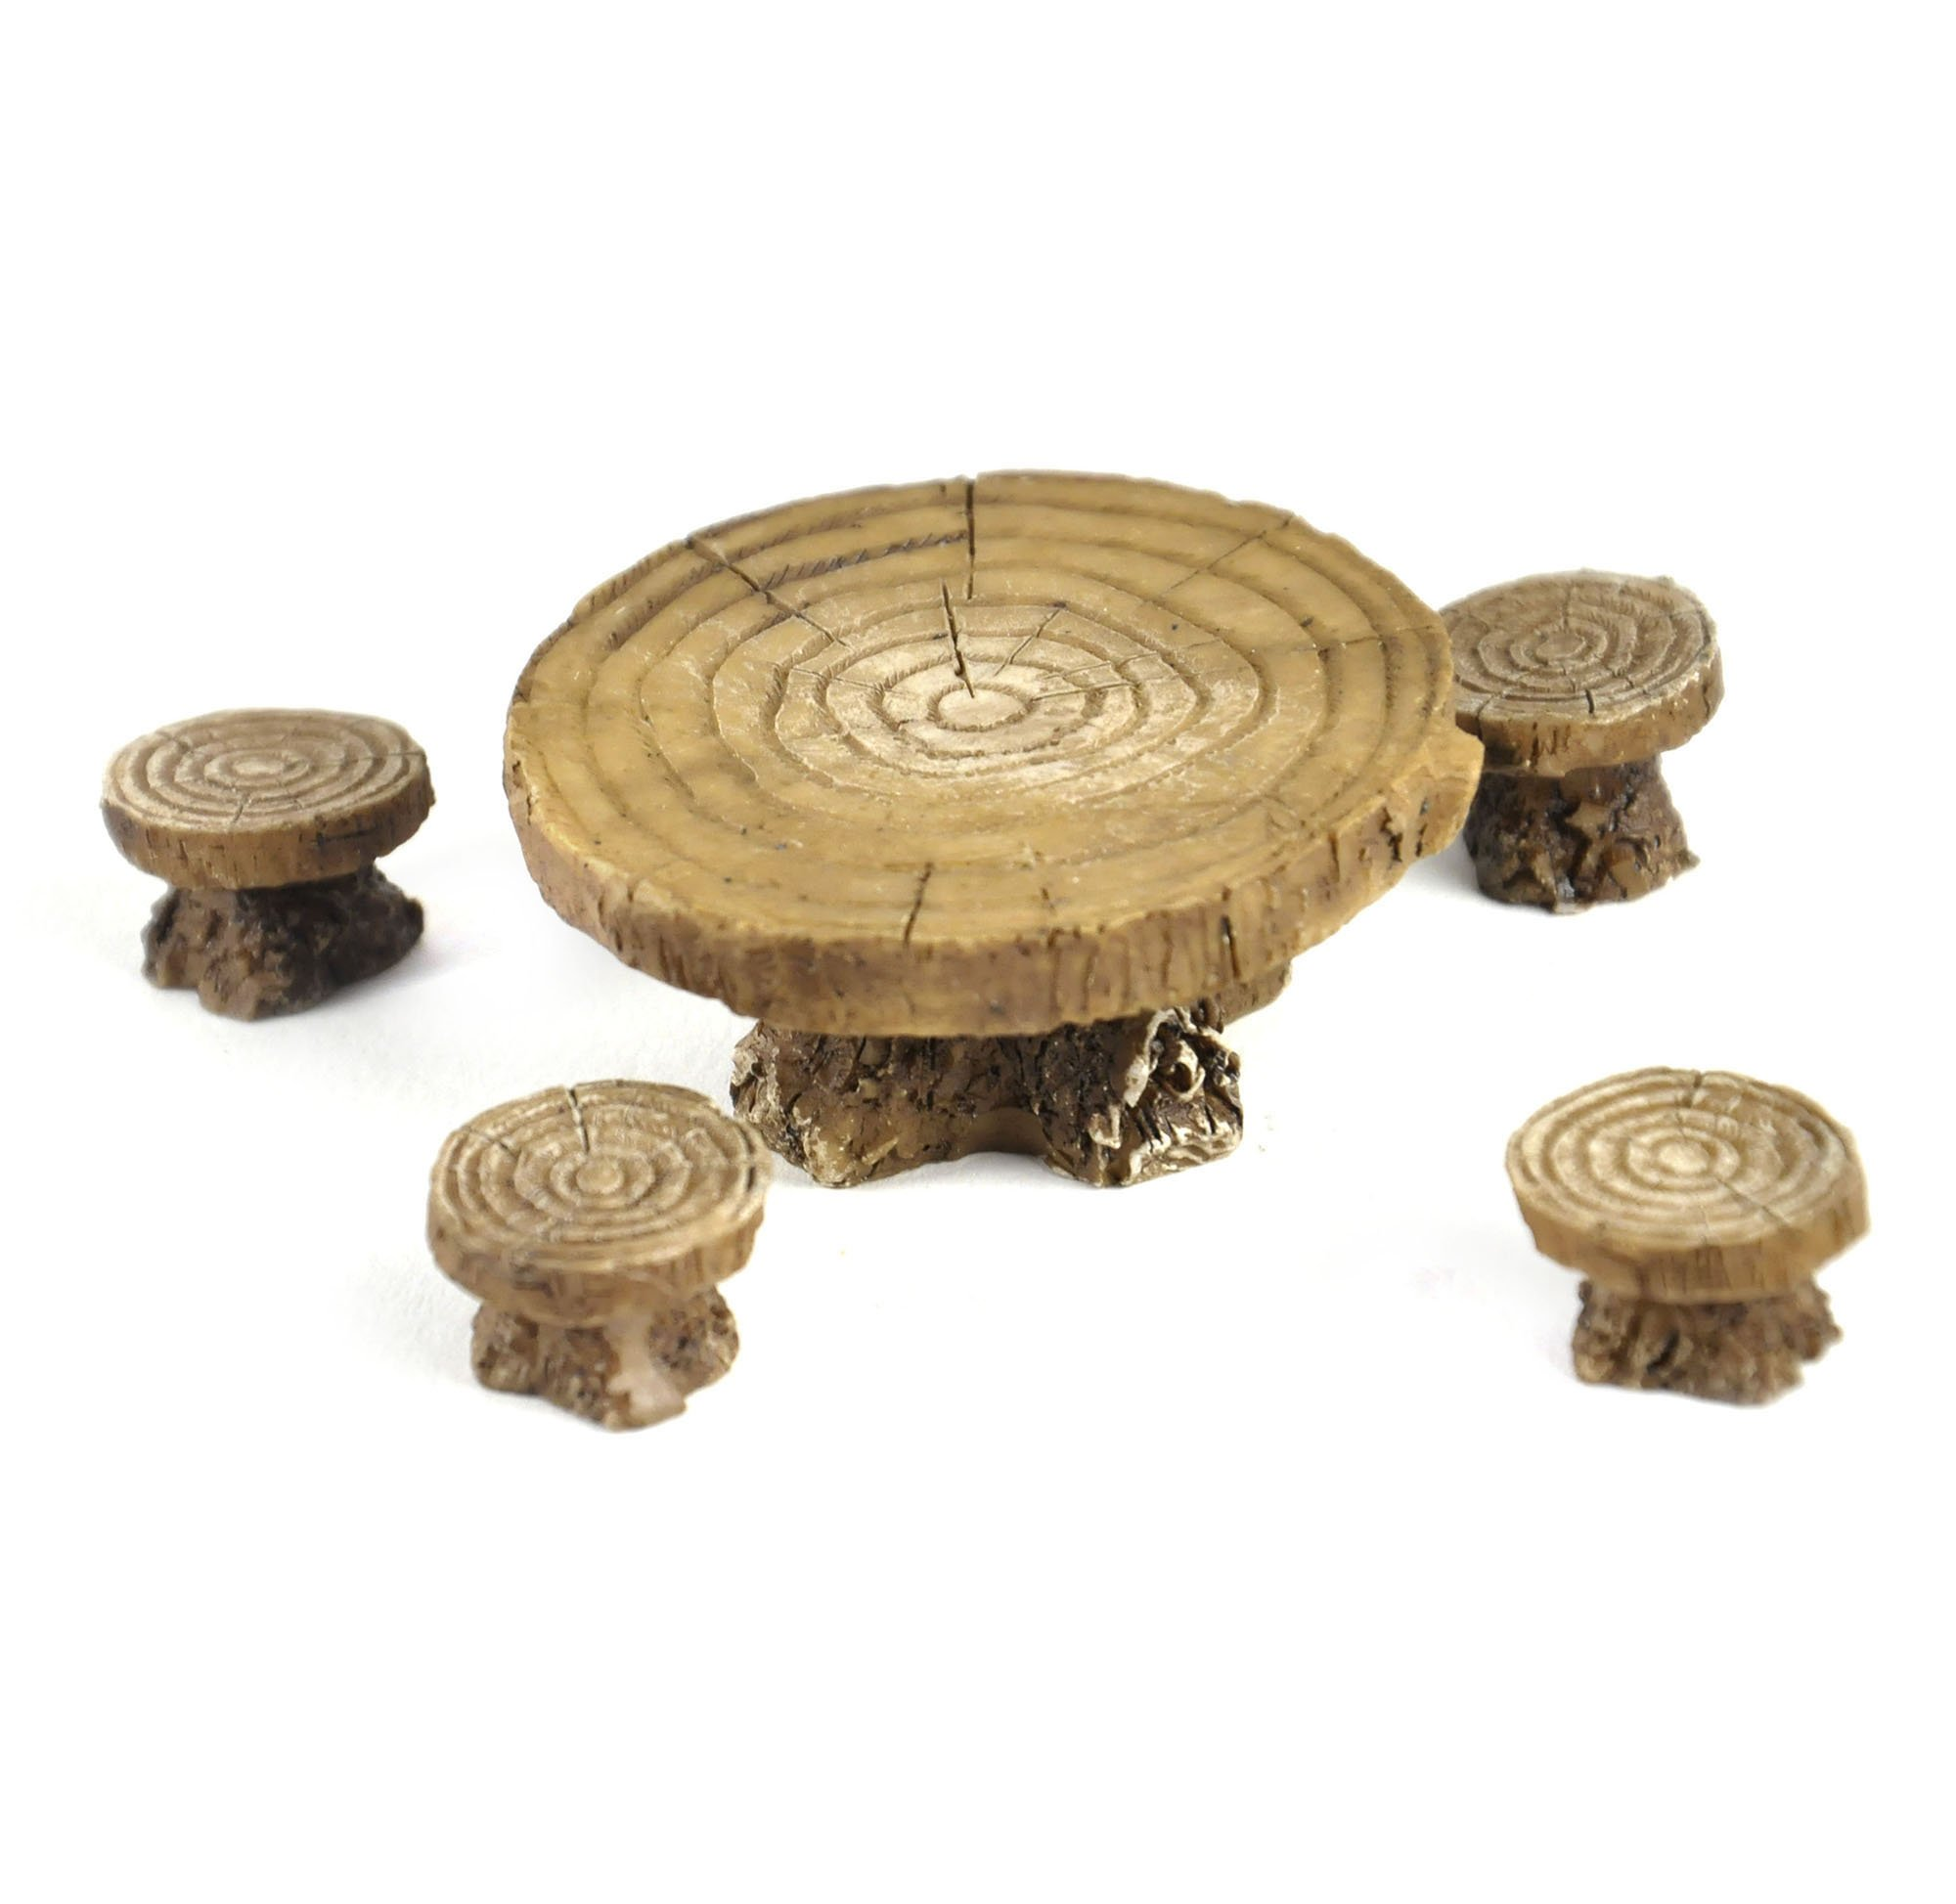 Georgetown Woodland Table and Stool Set - Fiddlehead Fairy Garden Collection